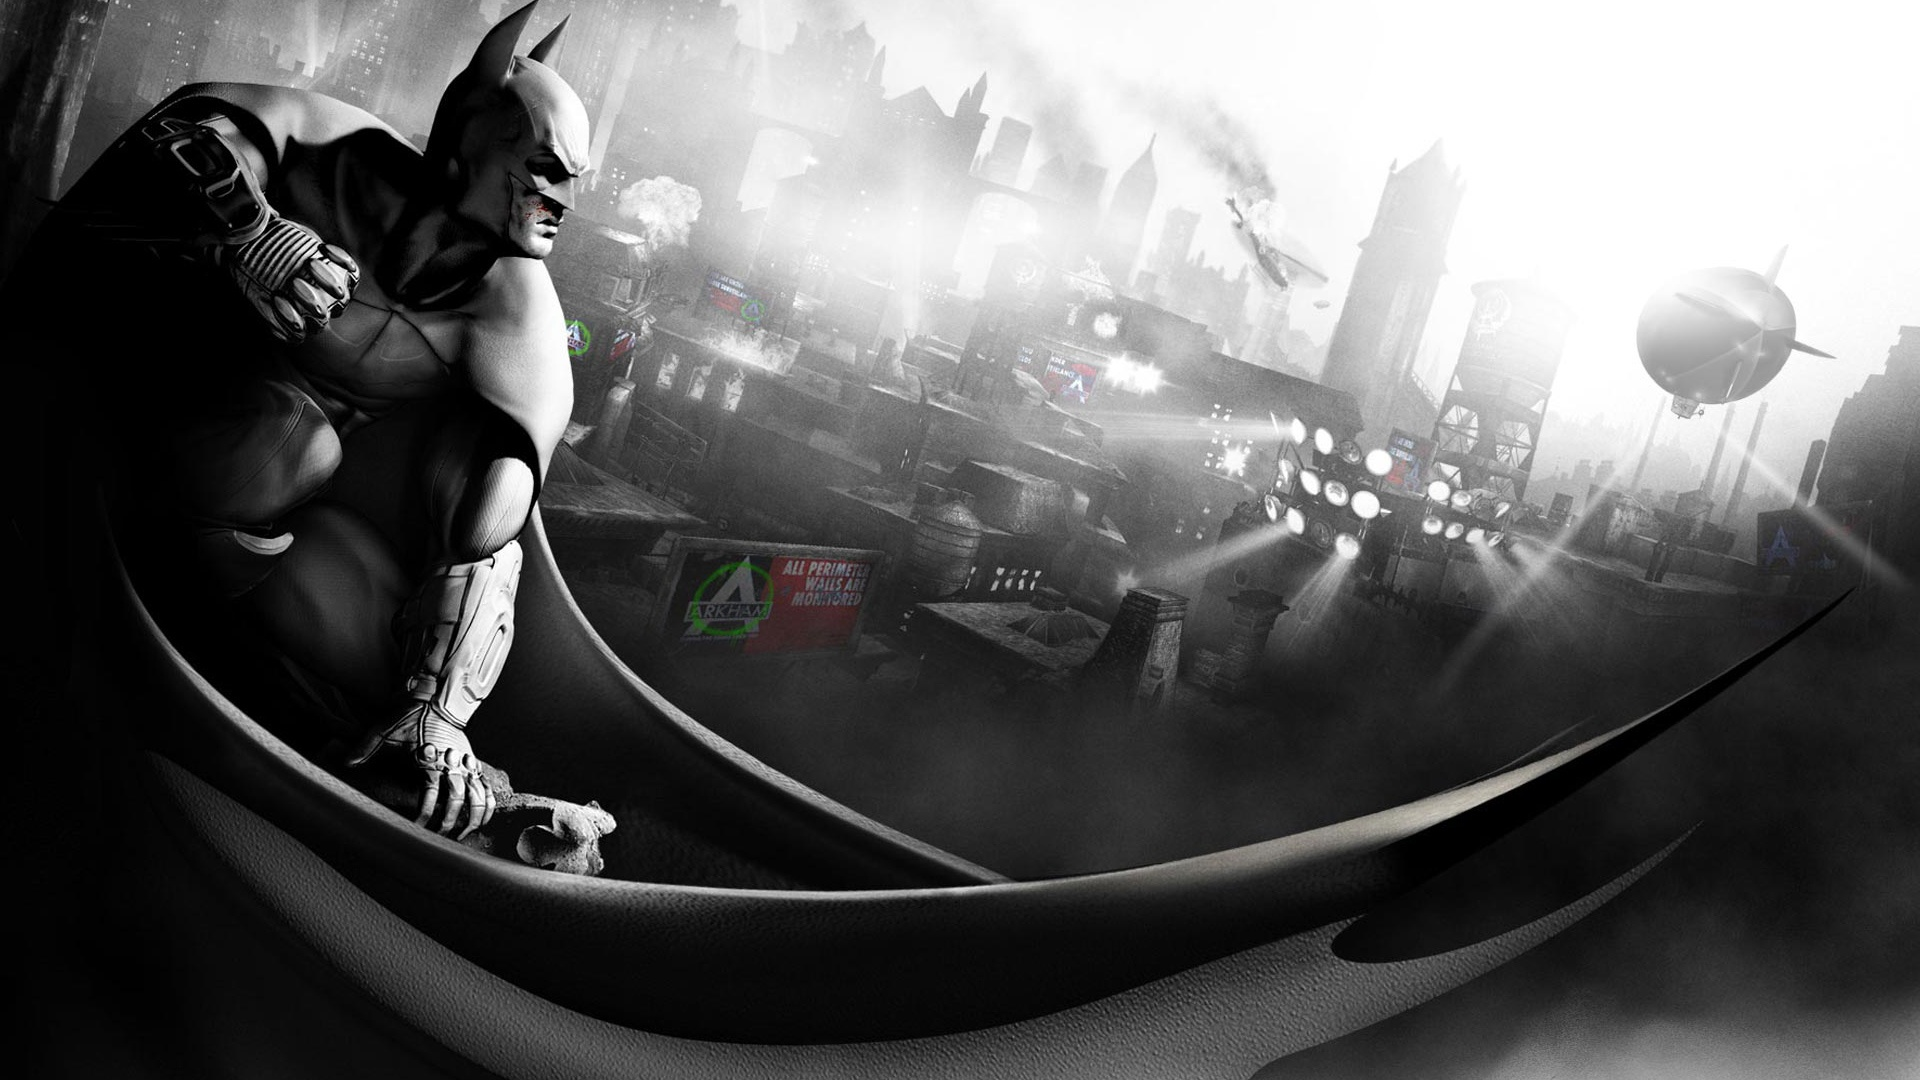 2011 Batman Arkham City Wallpapers HD Wallpapers 1920x1080